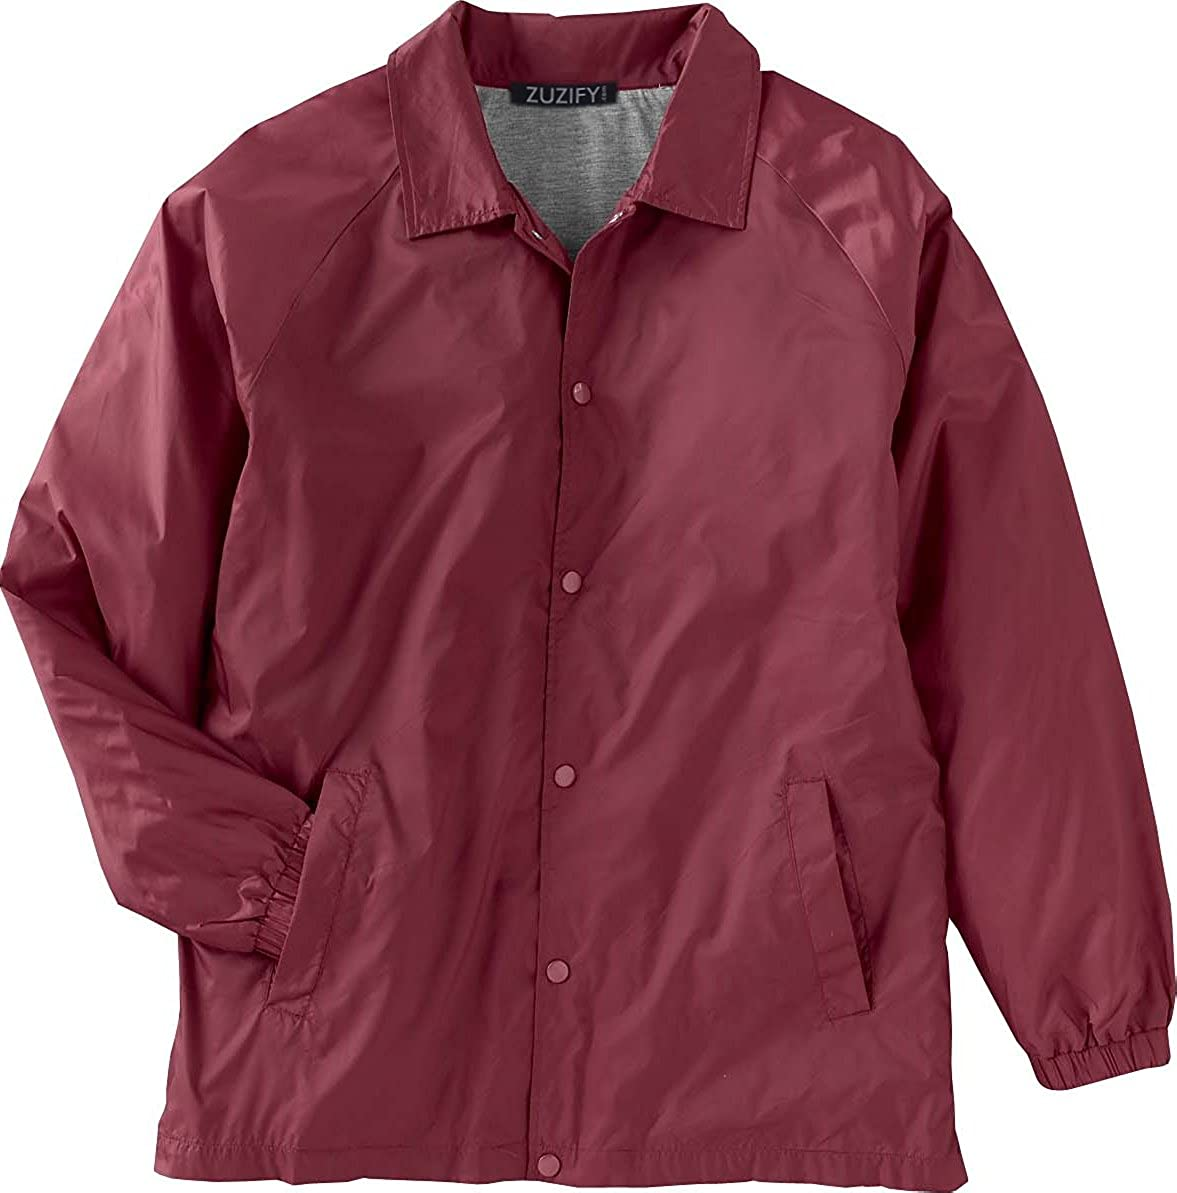 69b3b84ac ZUZIFY Nylon Snap Front Coaches Windbreaker Jacket. JR0831